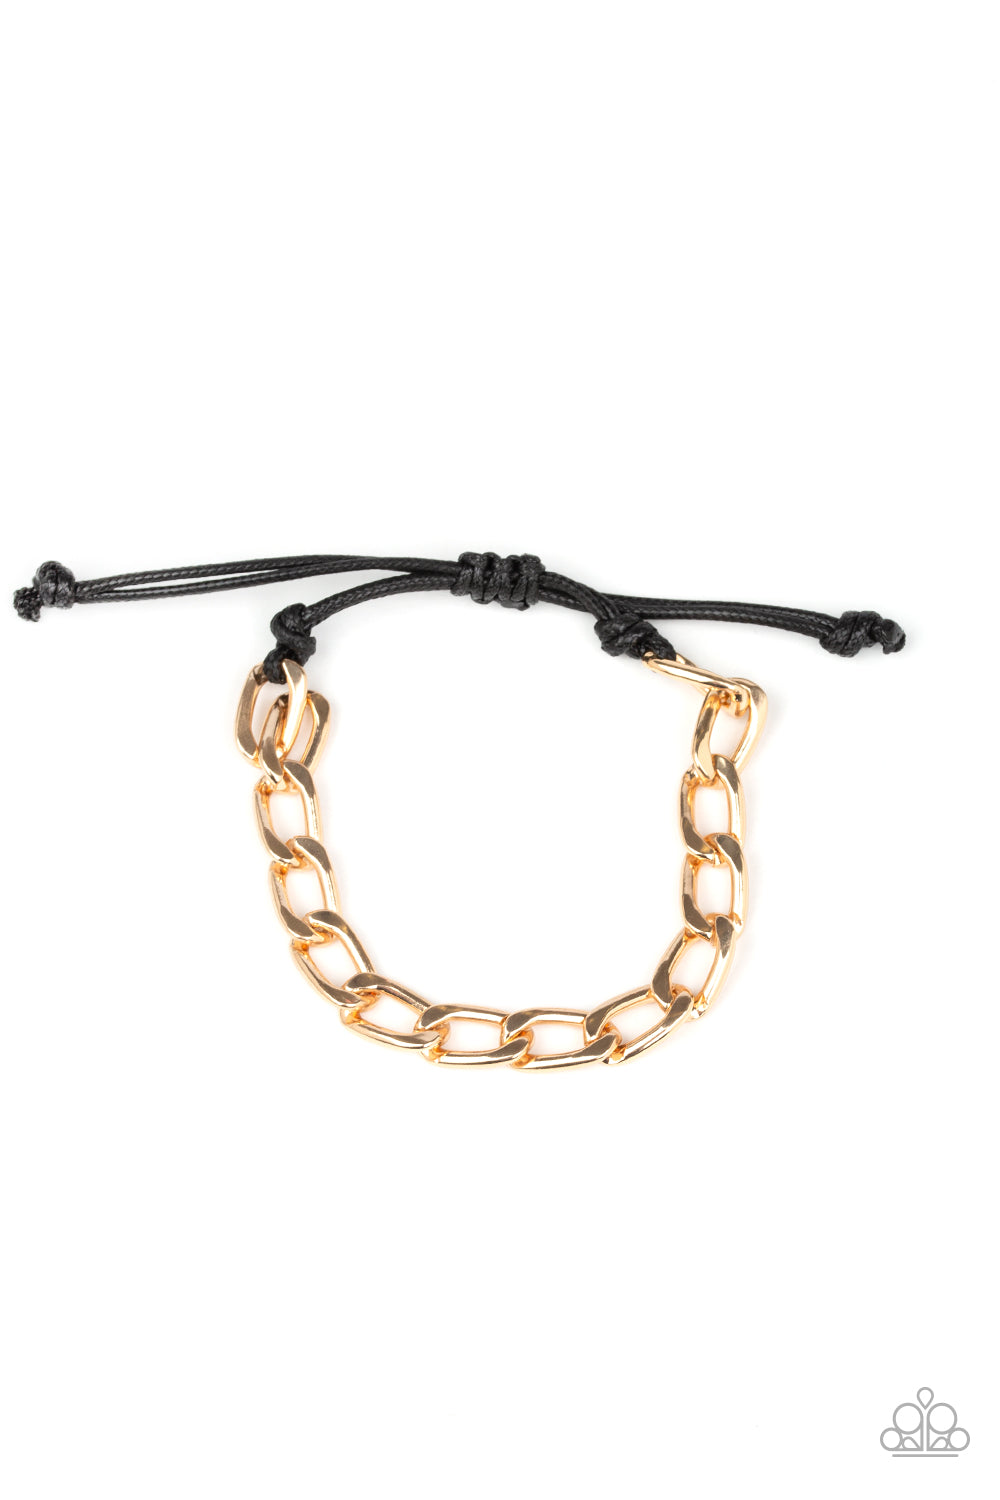 Paparazzi Accessories - Goalpost - Gold Urban Bracelet